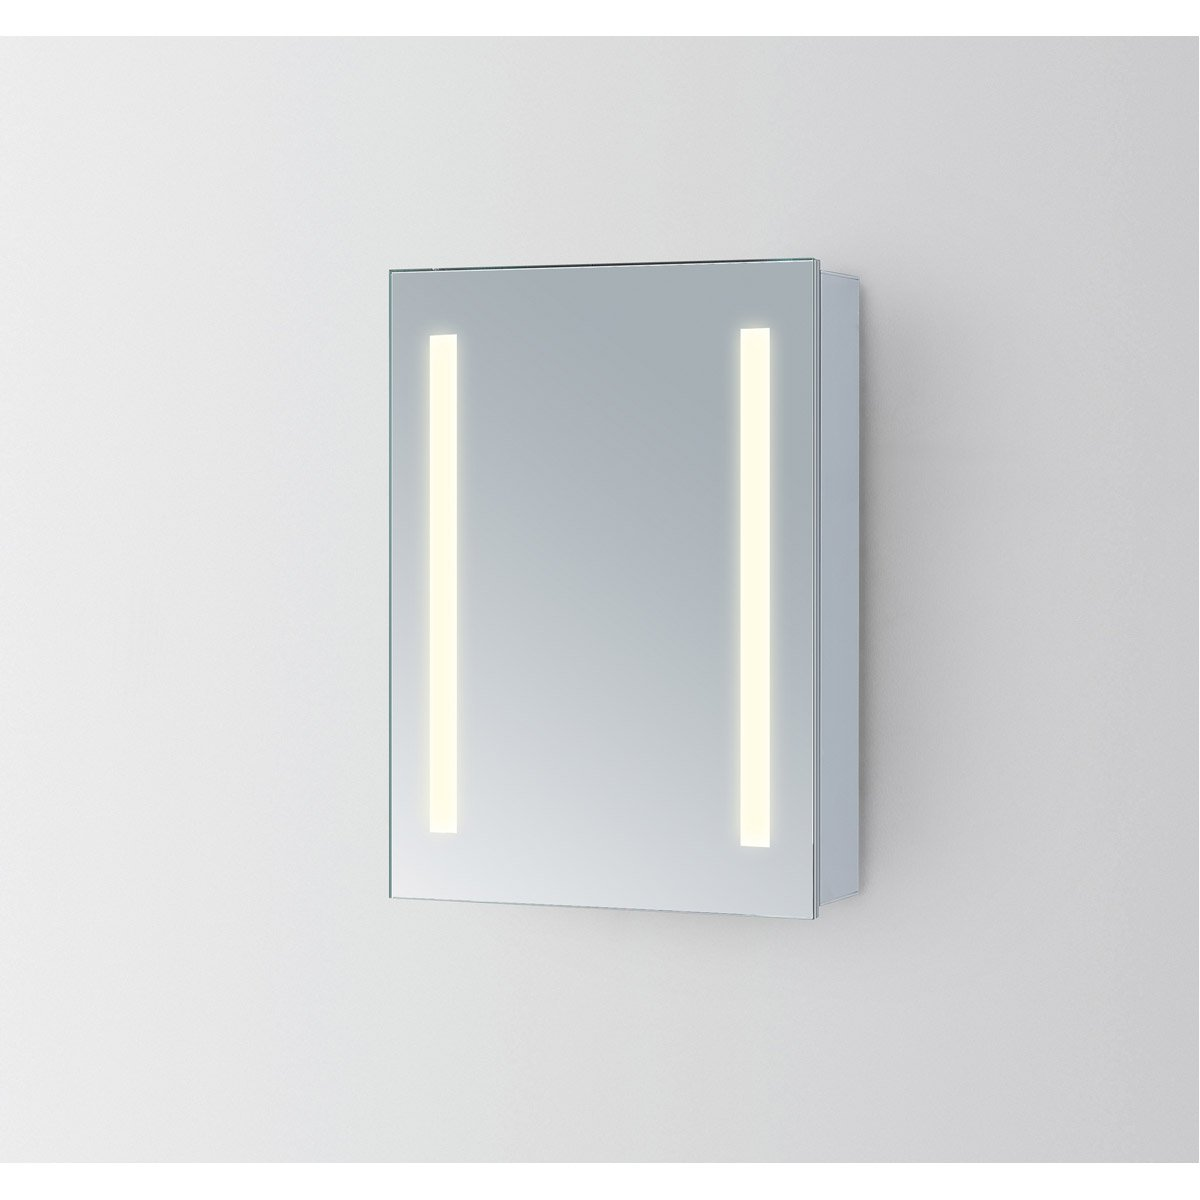 Elixir 27.5 X 19.5 Led Mirror Cabinet - Silver Finish (Mre8013) Led Cabinet